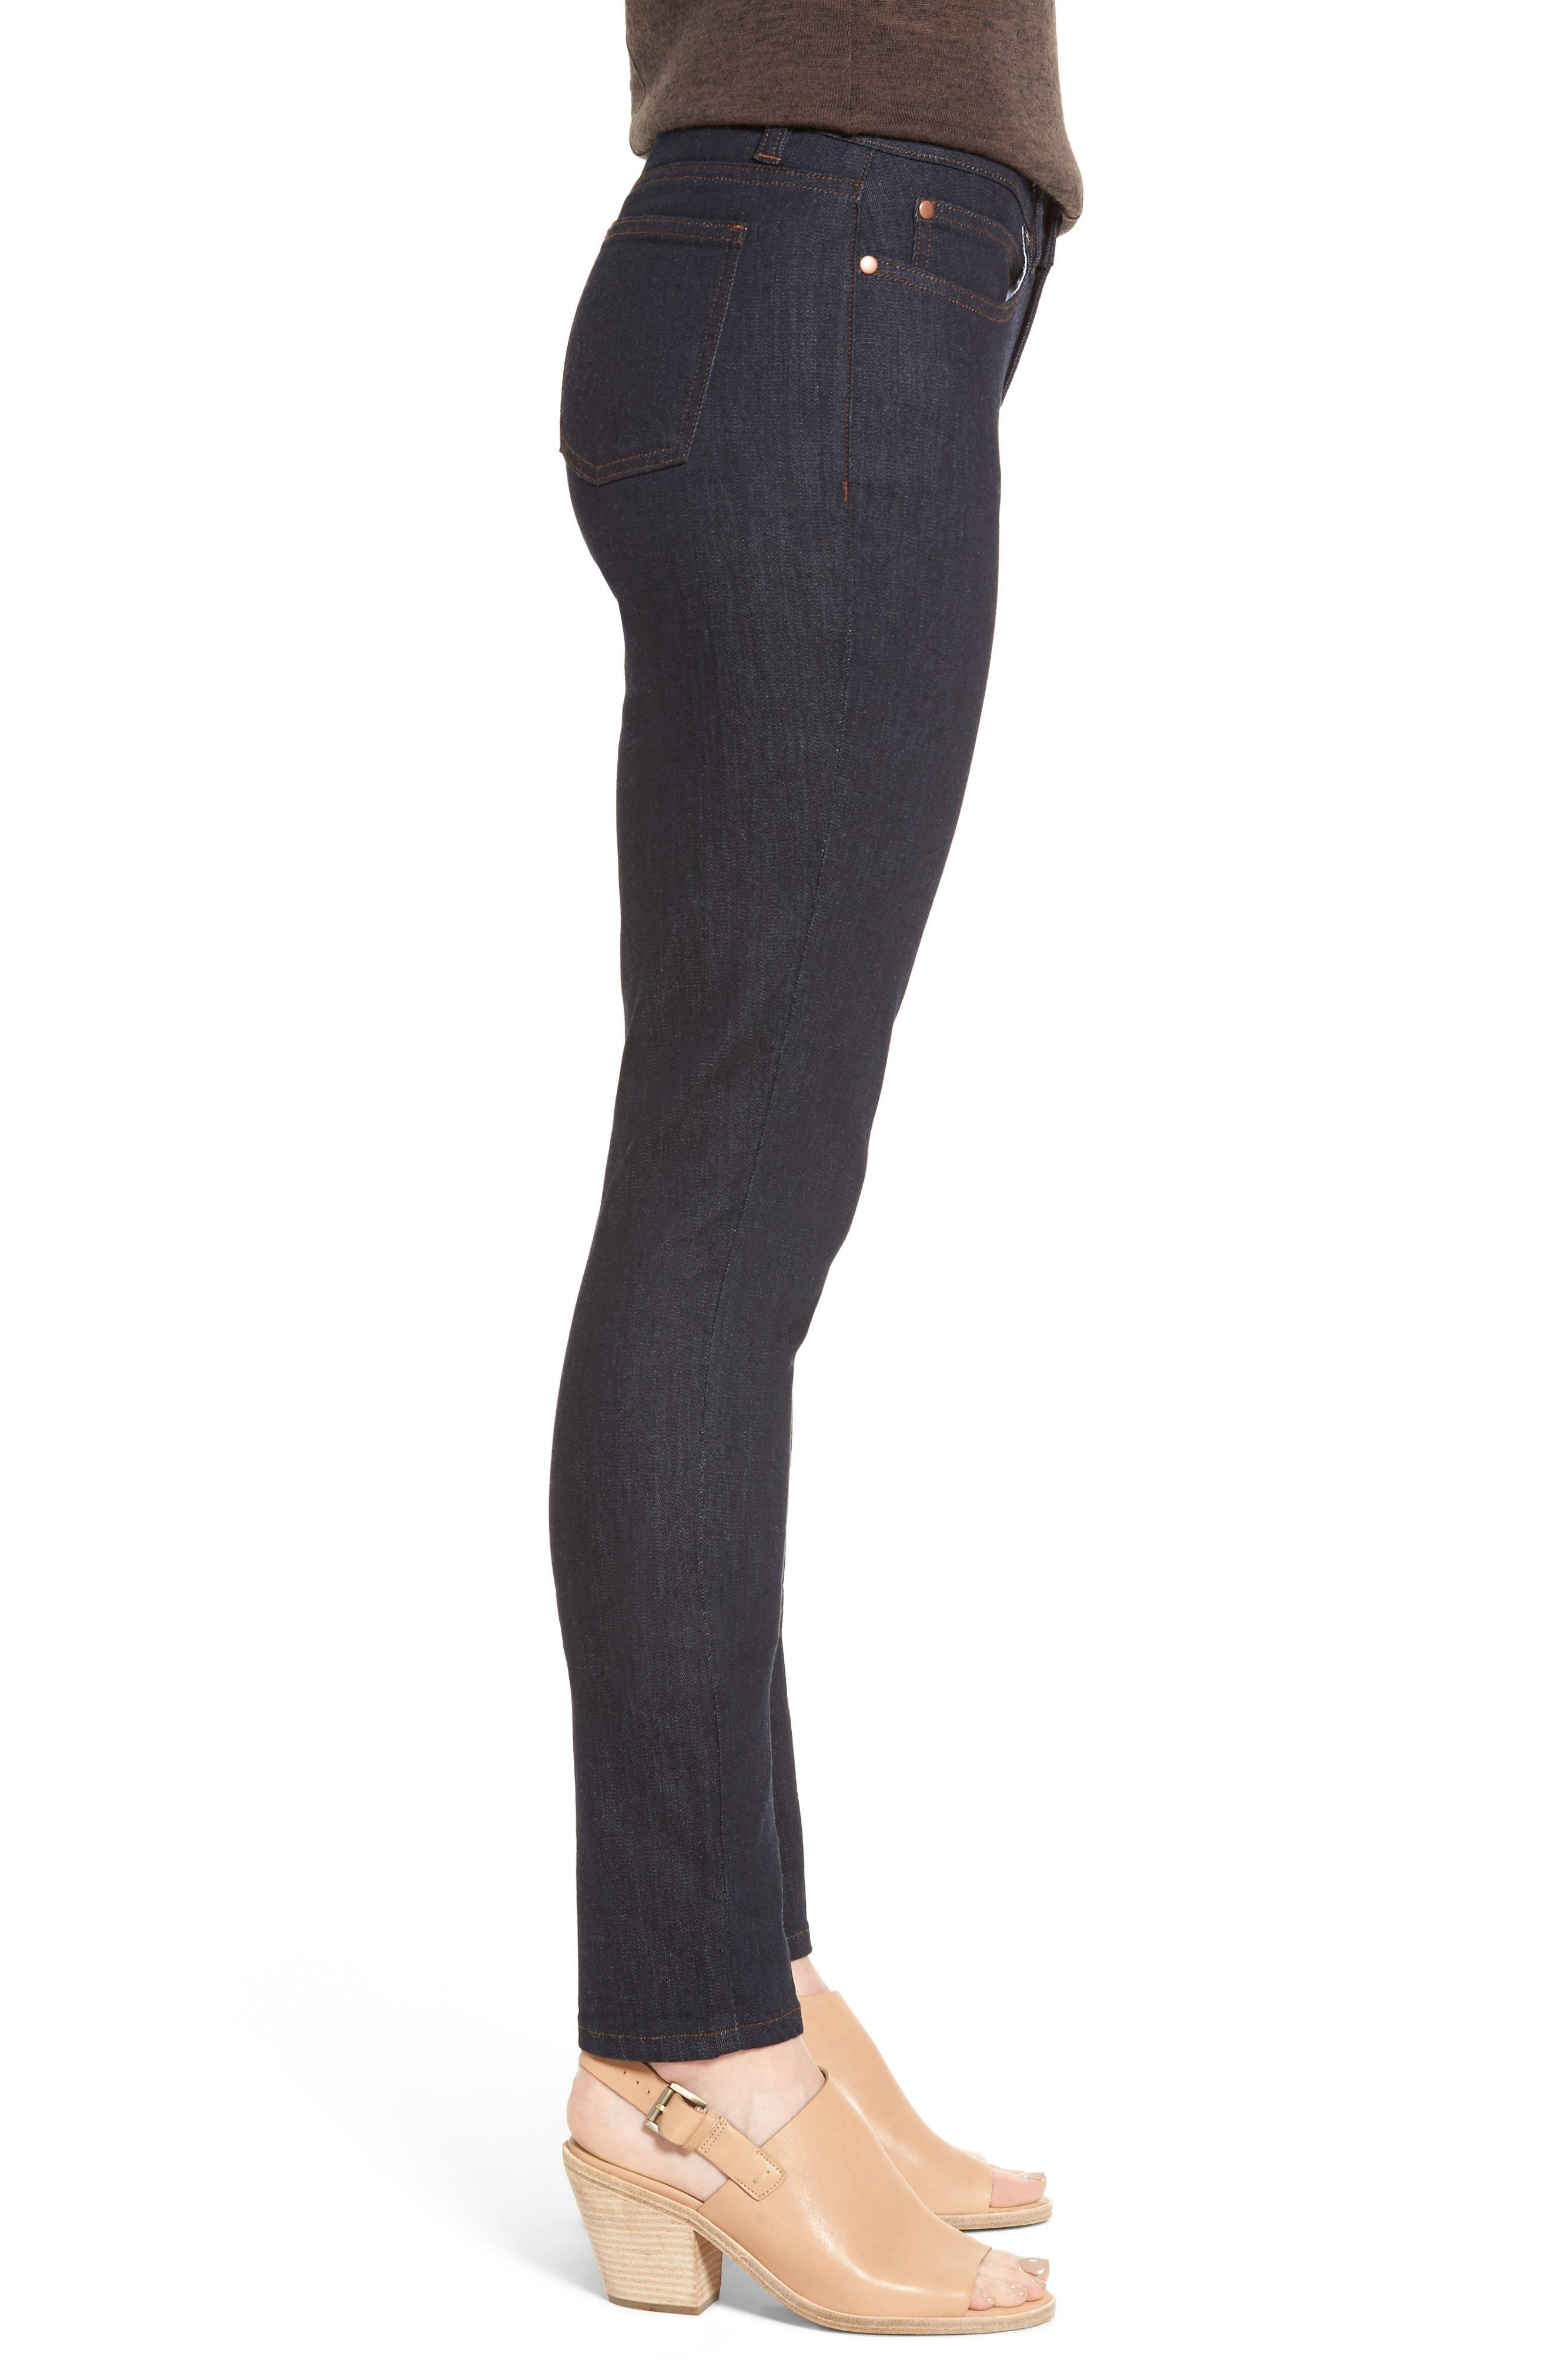 Alternate Image 3  - Eileen Fisher Stretch Skinny Jeans (Regular & Petite)